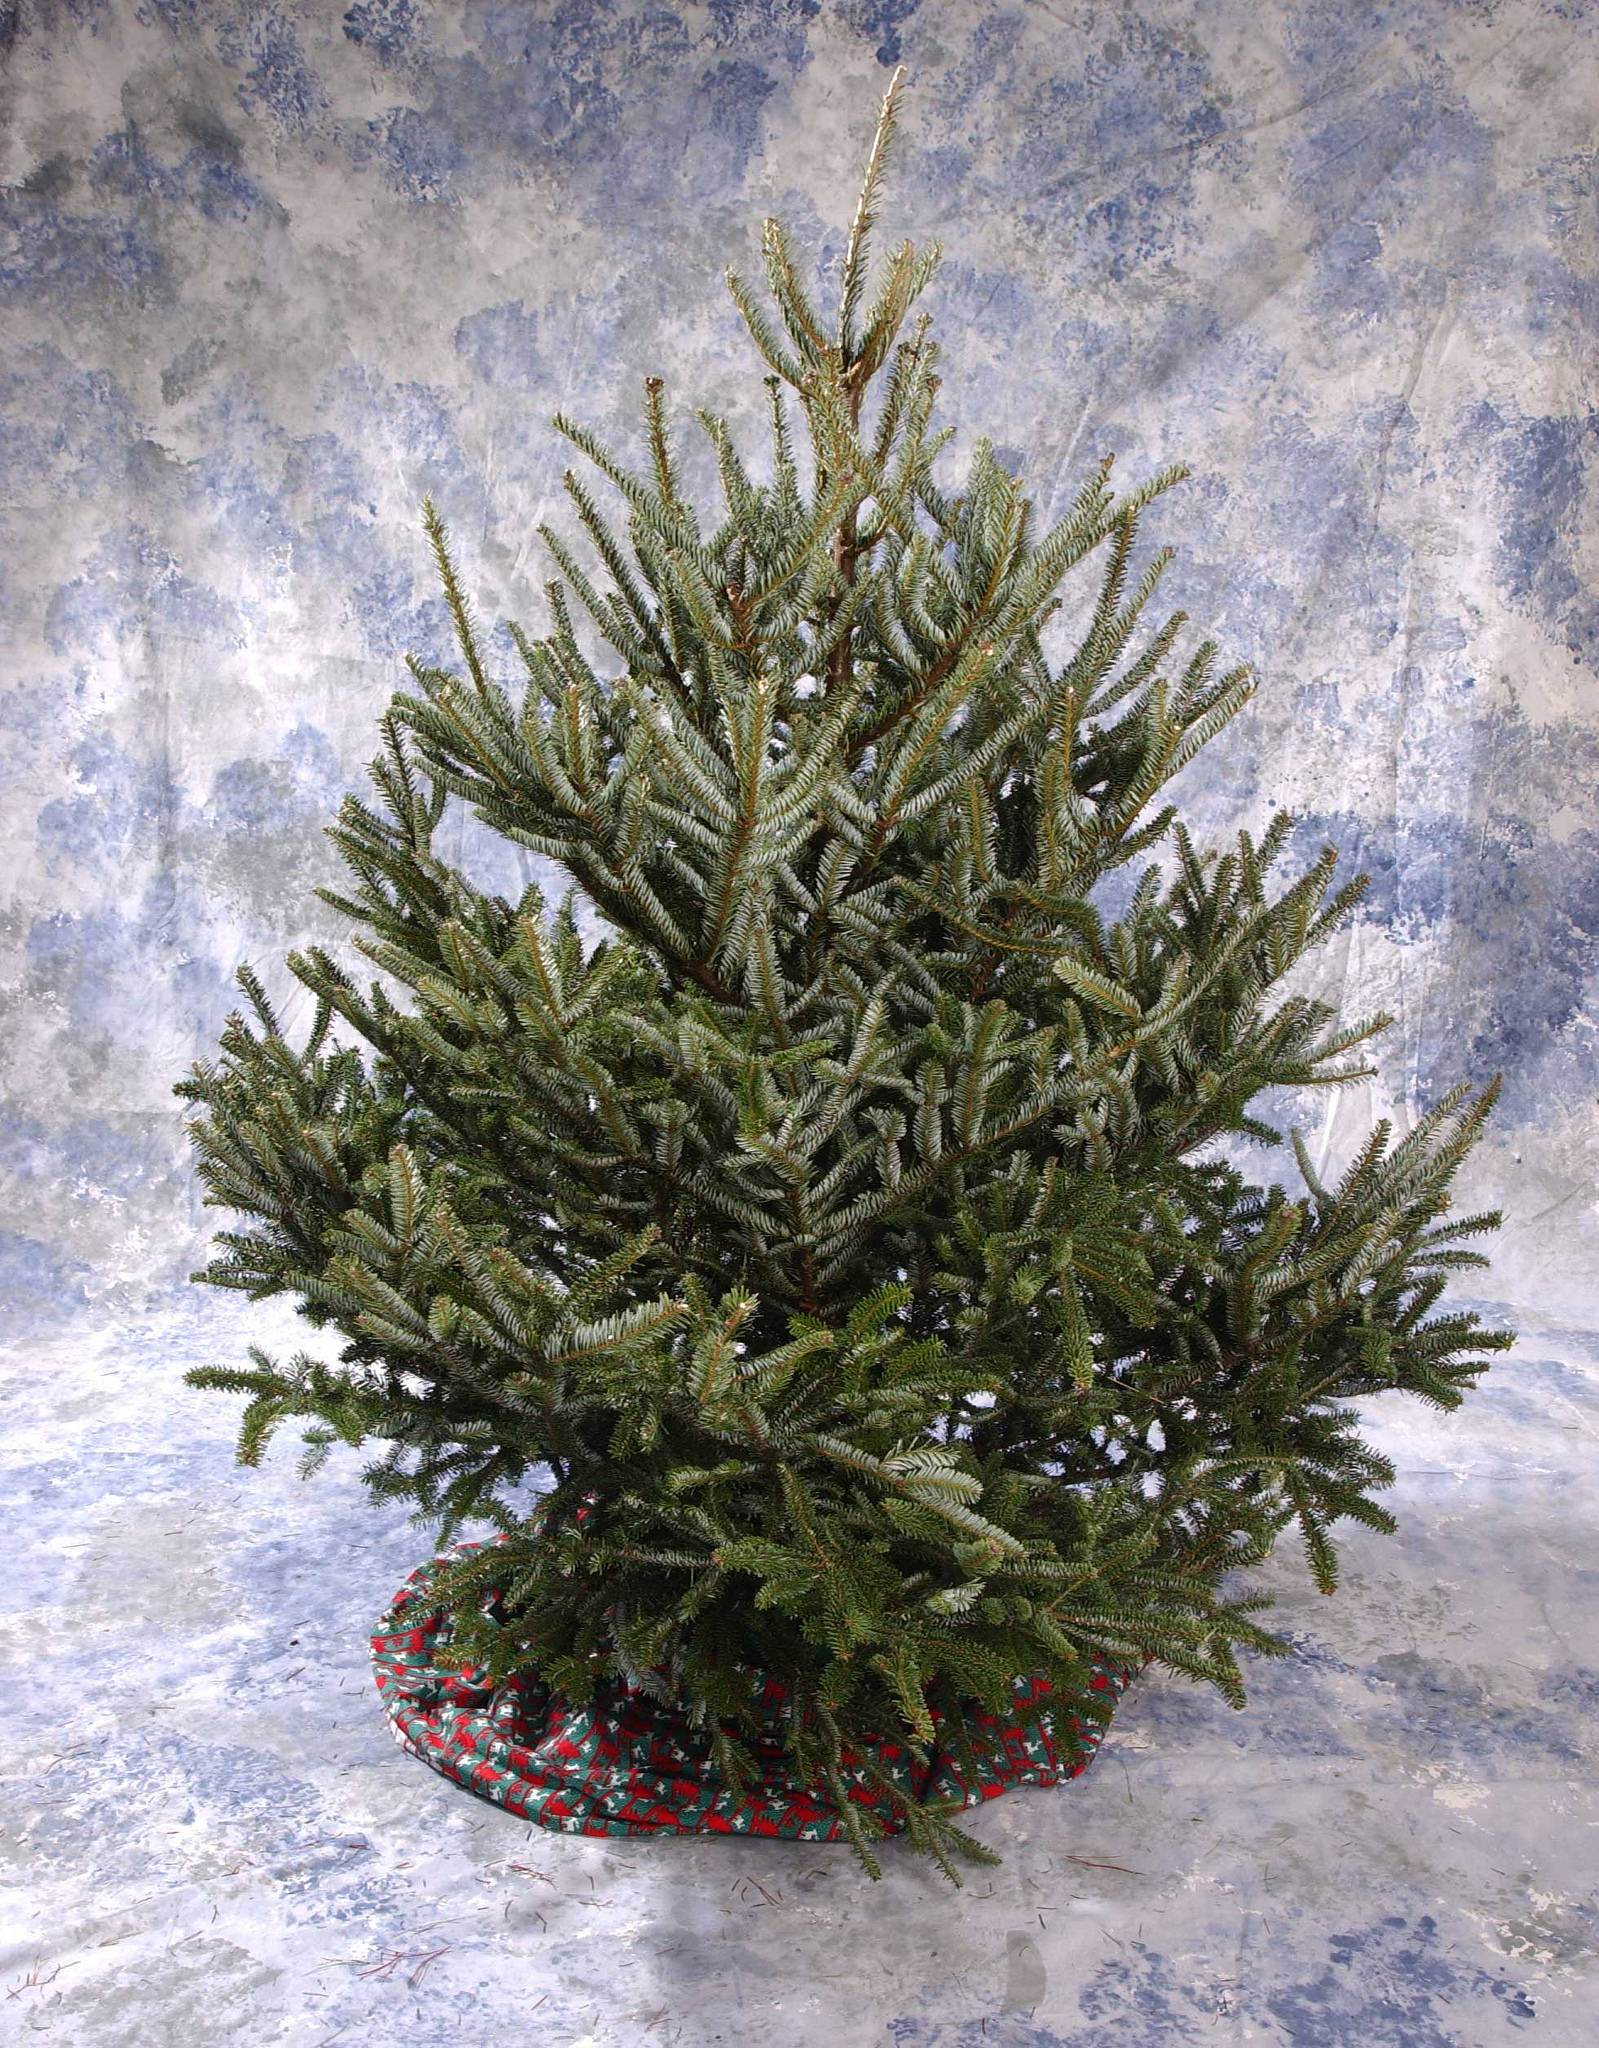 Treat your Christmas tree to vodka? Only if you want to waste it